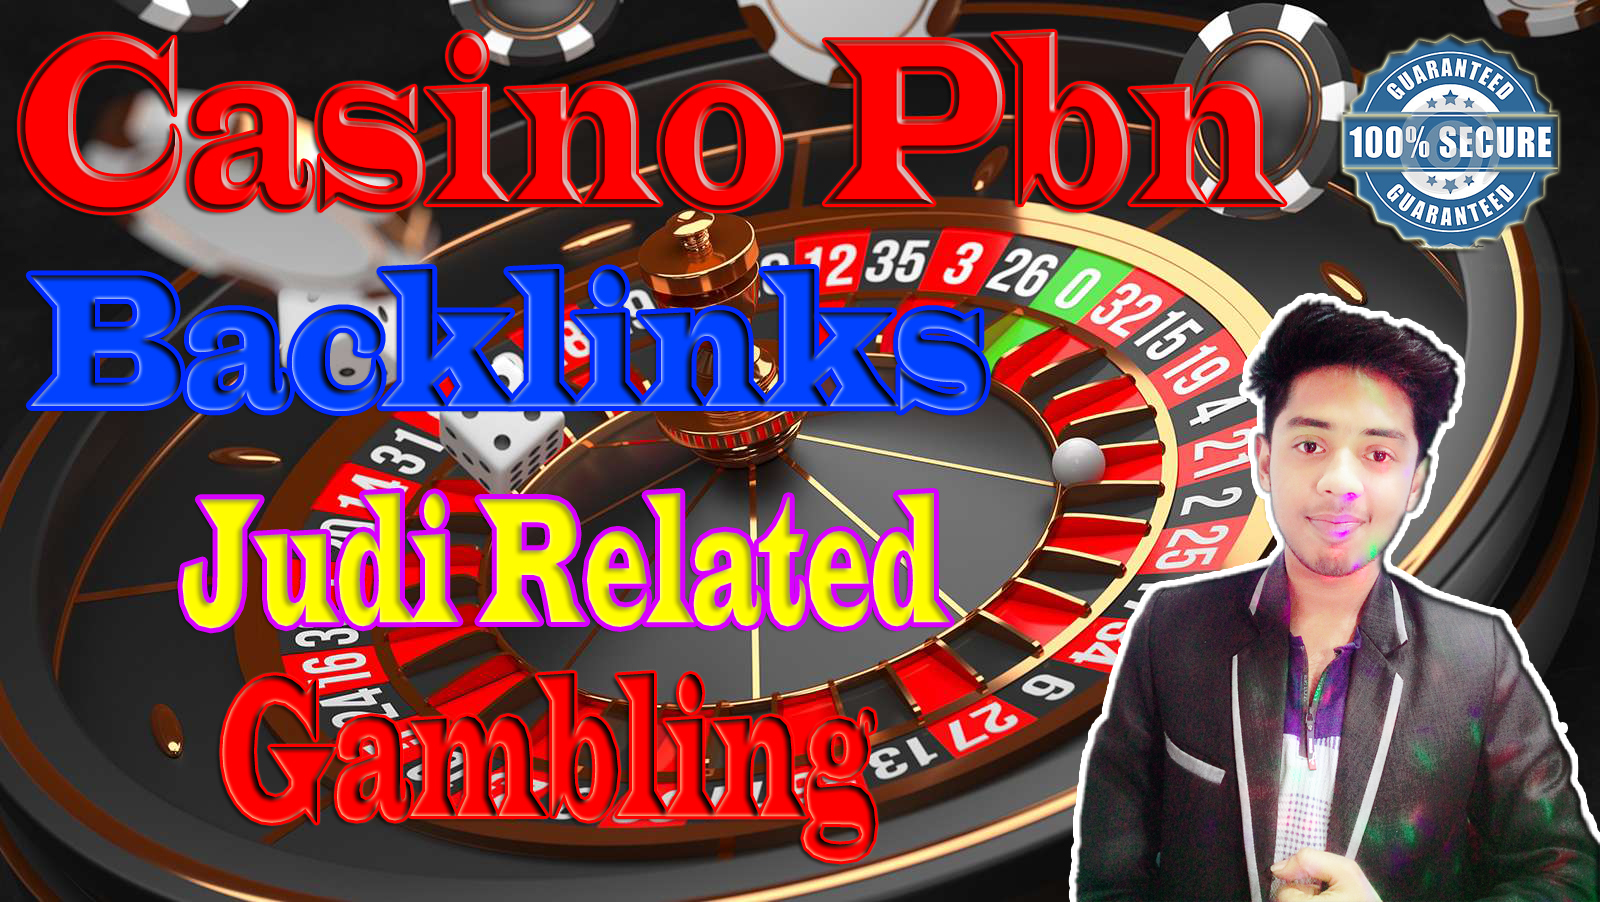 650+ Casino Pbn Backlink,  judi,  Poker Related Casino Gambling,  Top Rank Your Casino Website